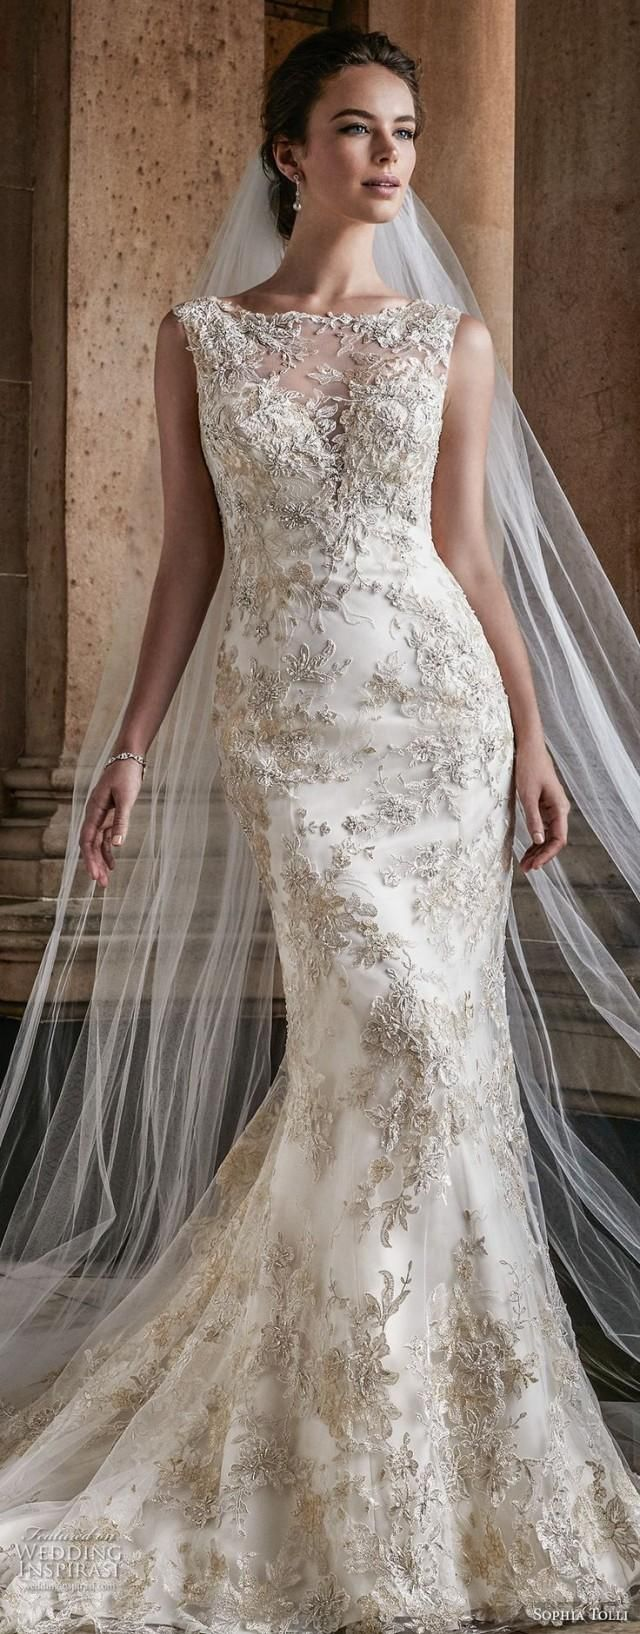 Sophia Tolli Wedding Dresses are known for their timeless designs and exquisite detailing, and the latest collection? A fabulous mix of romance and glam. Think